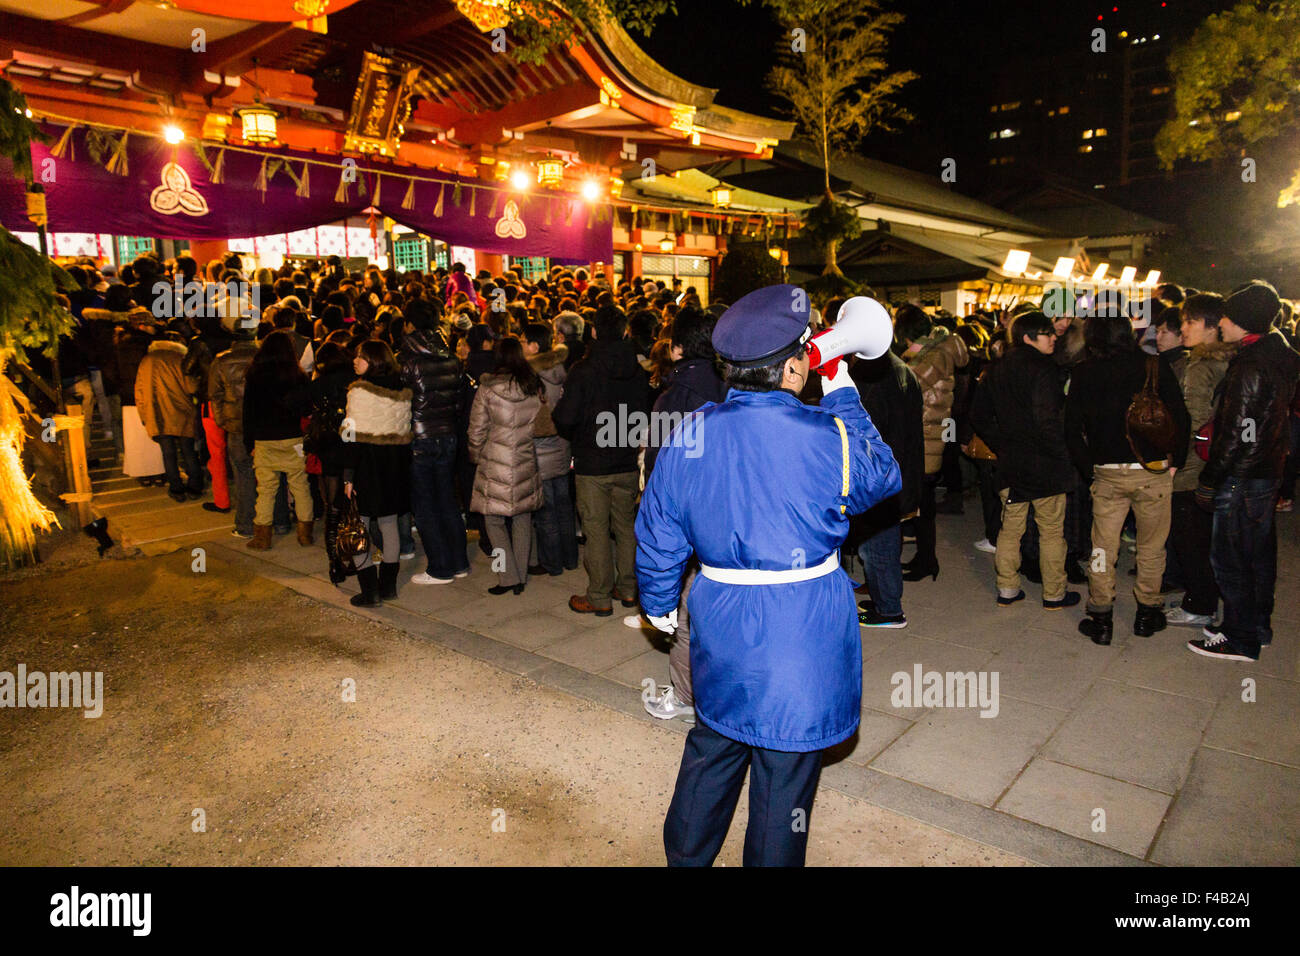 New Year's eve, Nishinomiya shrine, midnight. Security man using loud hailer in front of queue of hundreds of - Stock Image